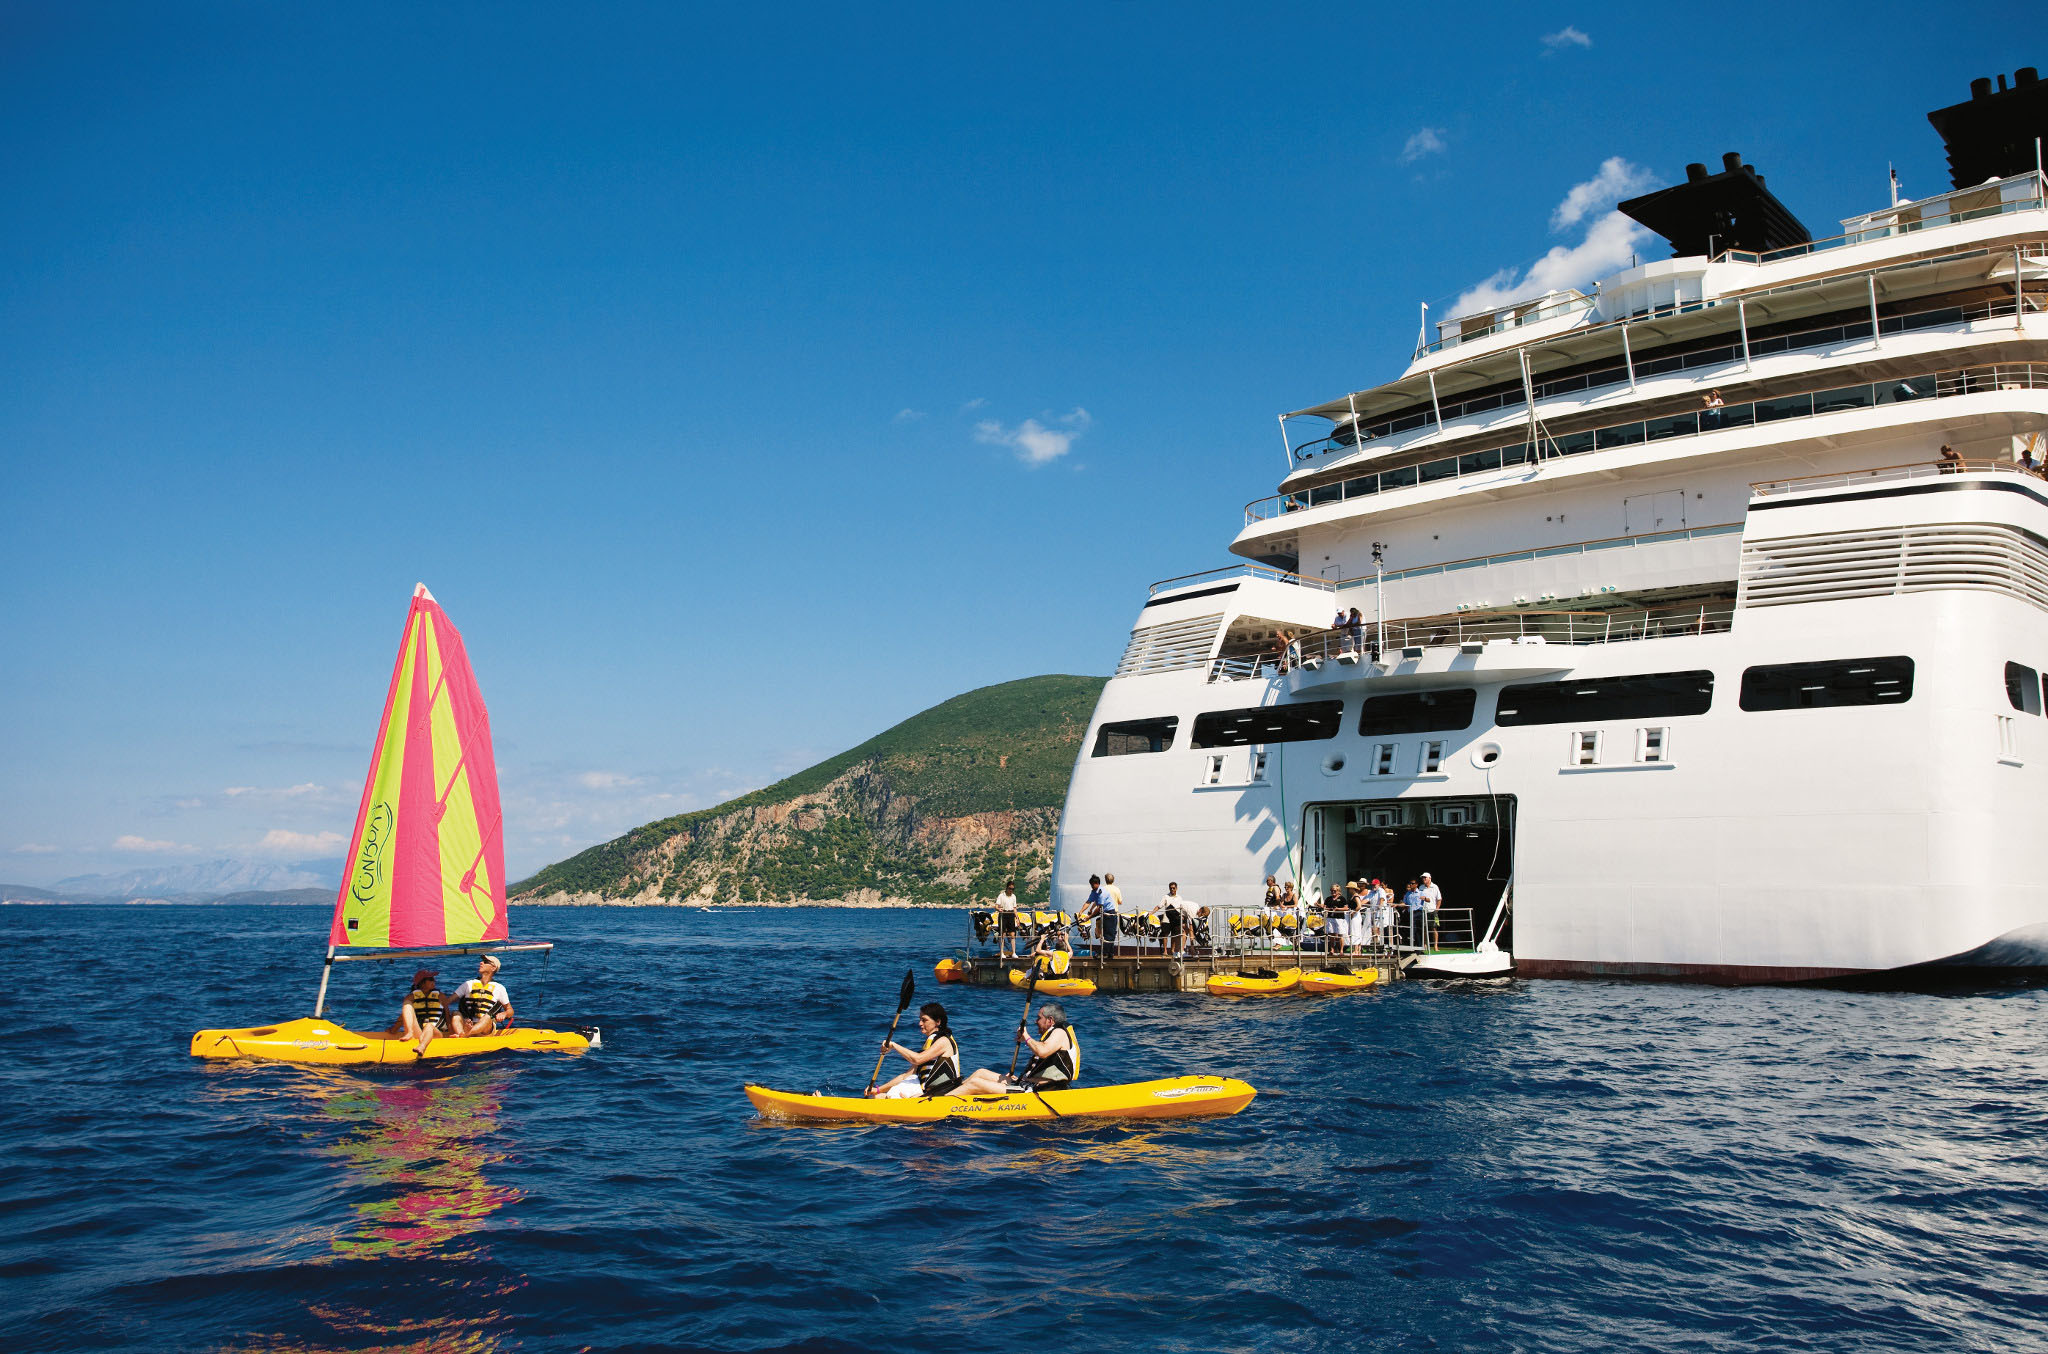 Excursions can launch directly from the innovative fold-out watersports marina.